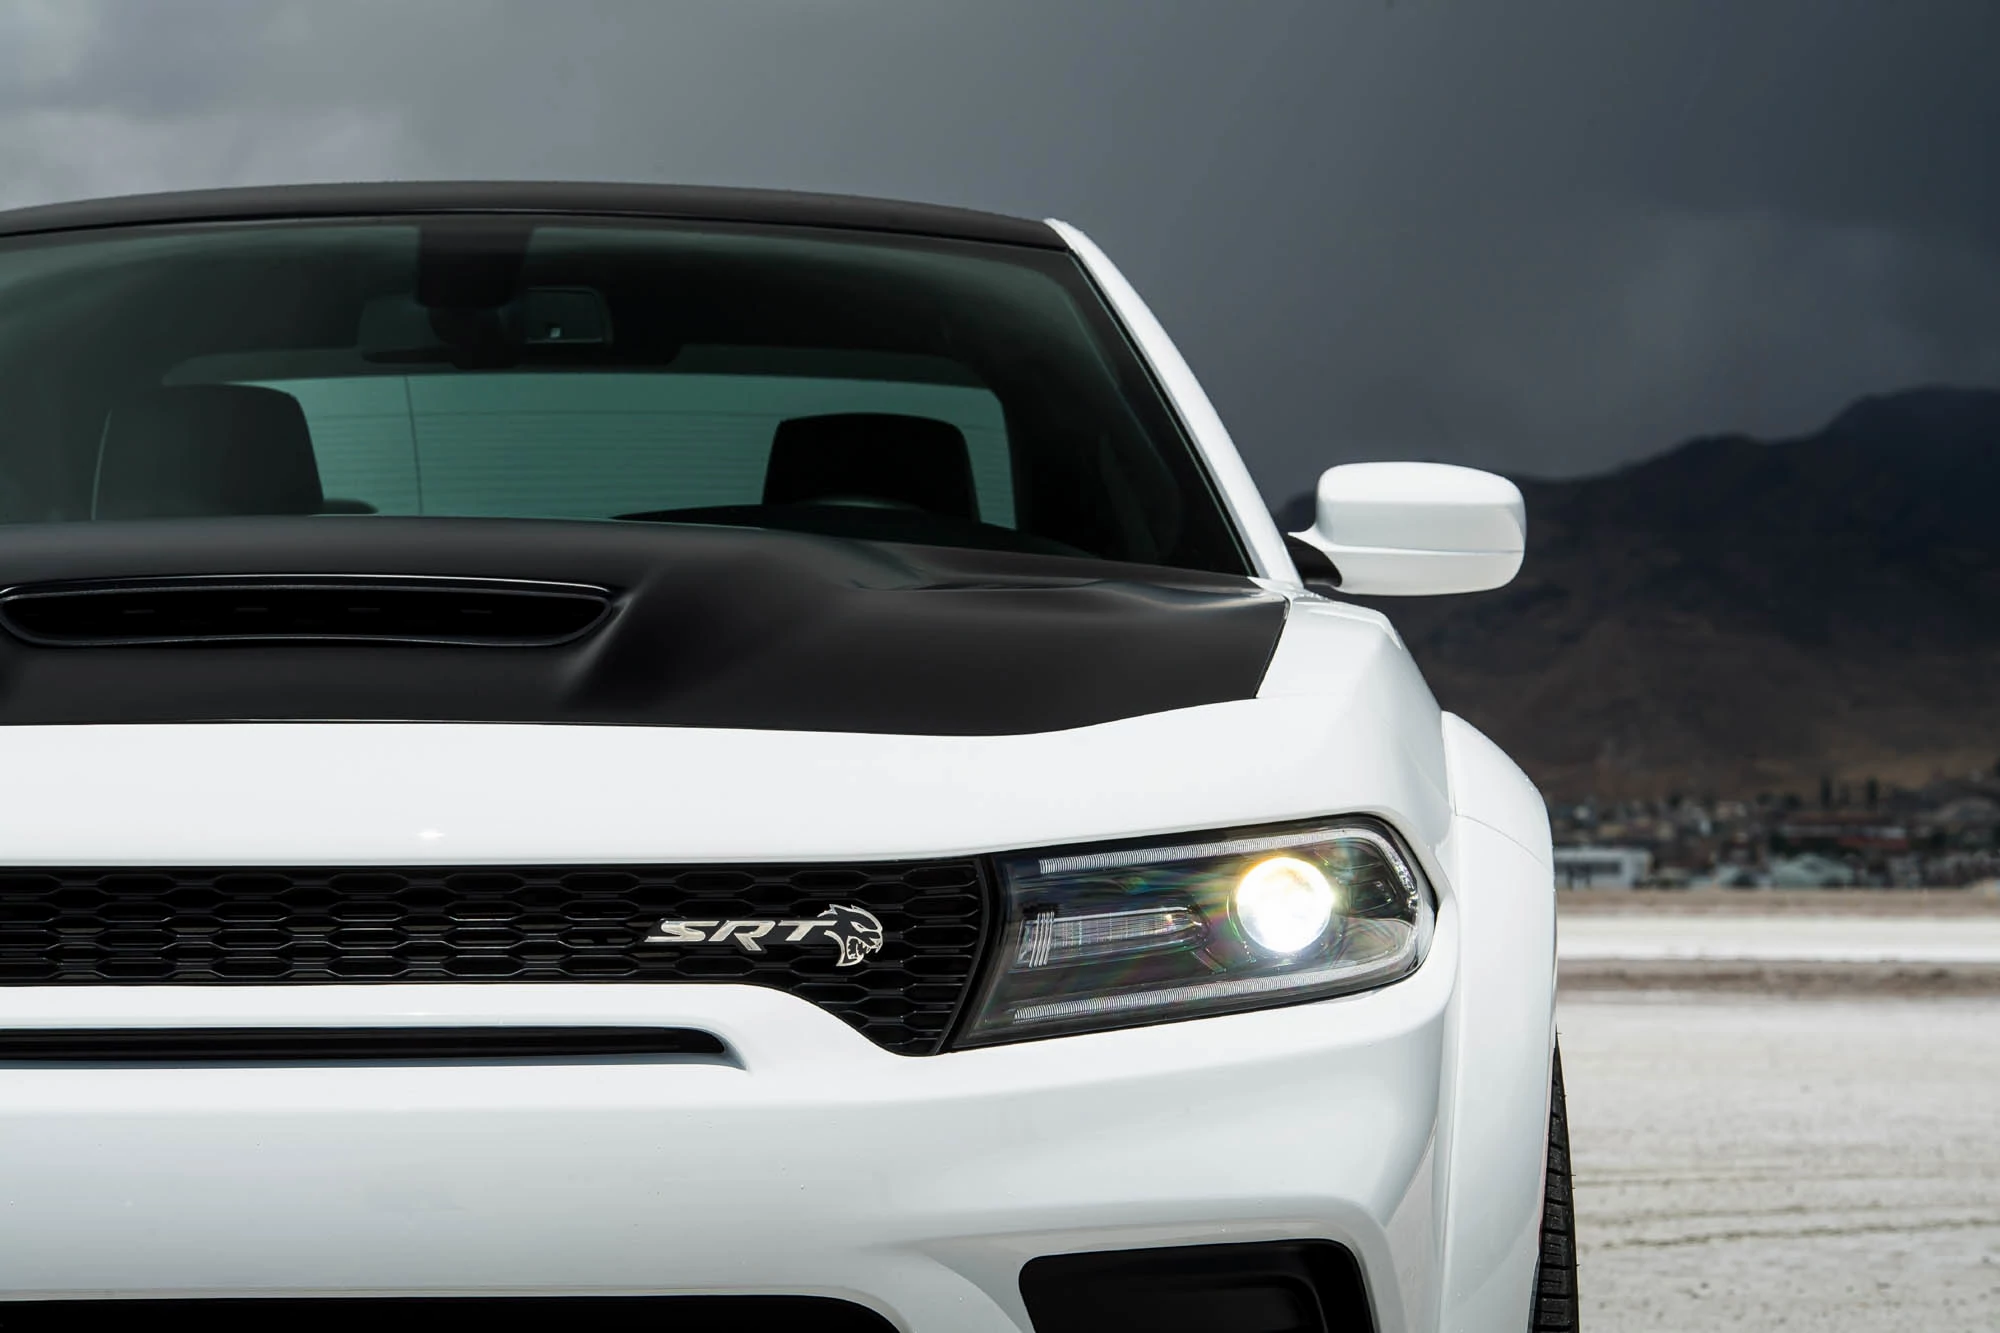 2021 Dodge Charger Srt Hellcat Redeye You Are Not Actually Surprised Are You News From Cars Com Technology Shout